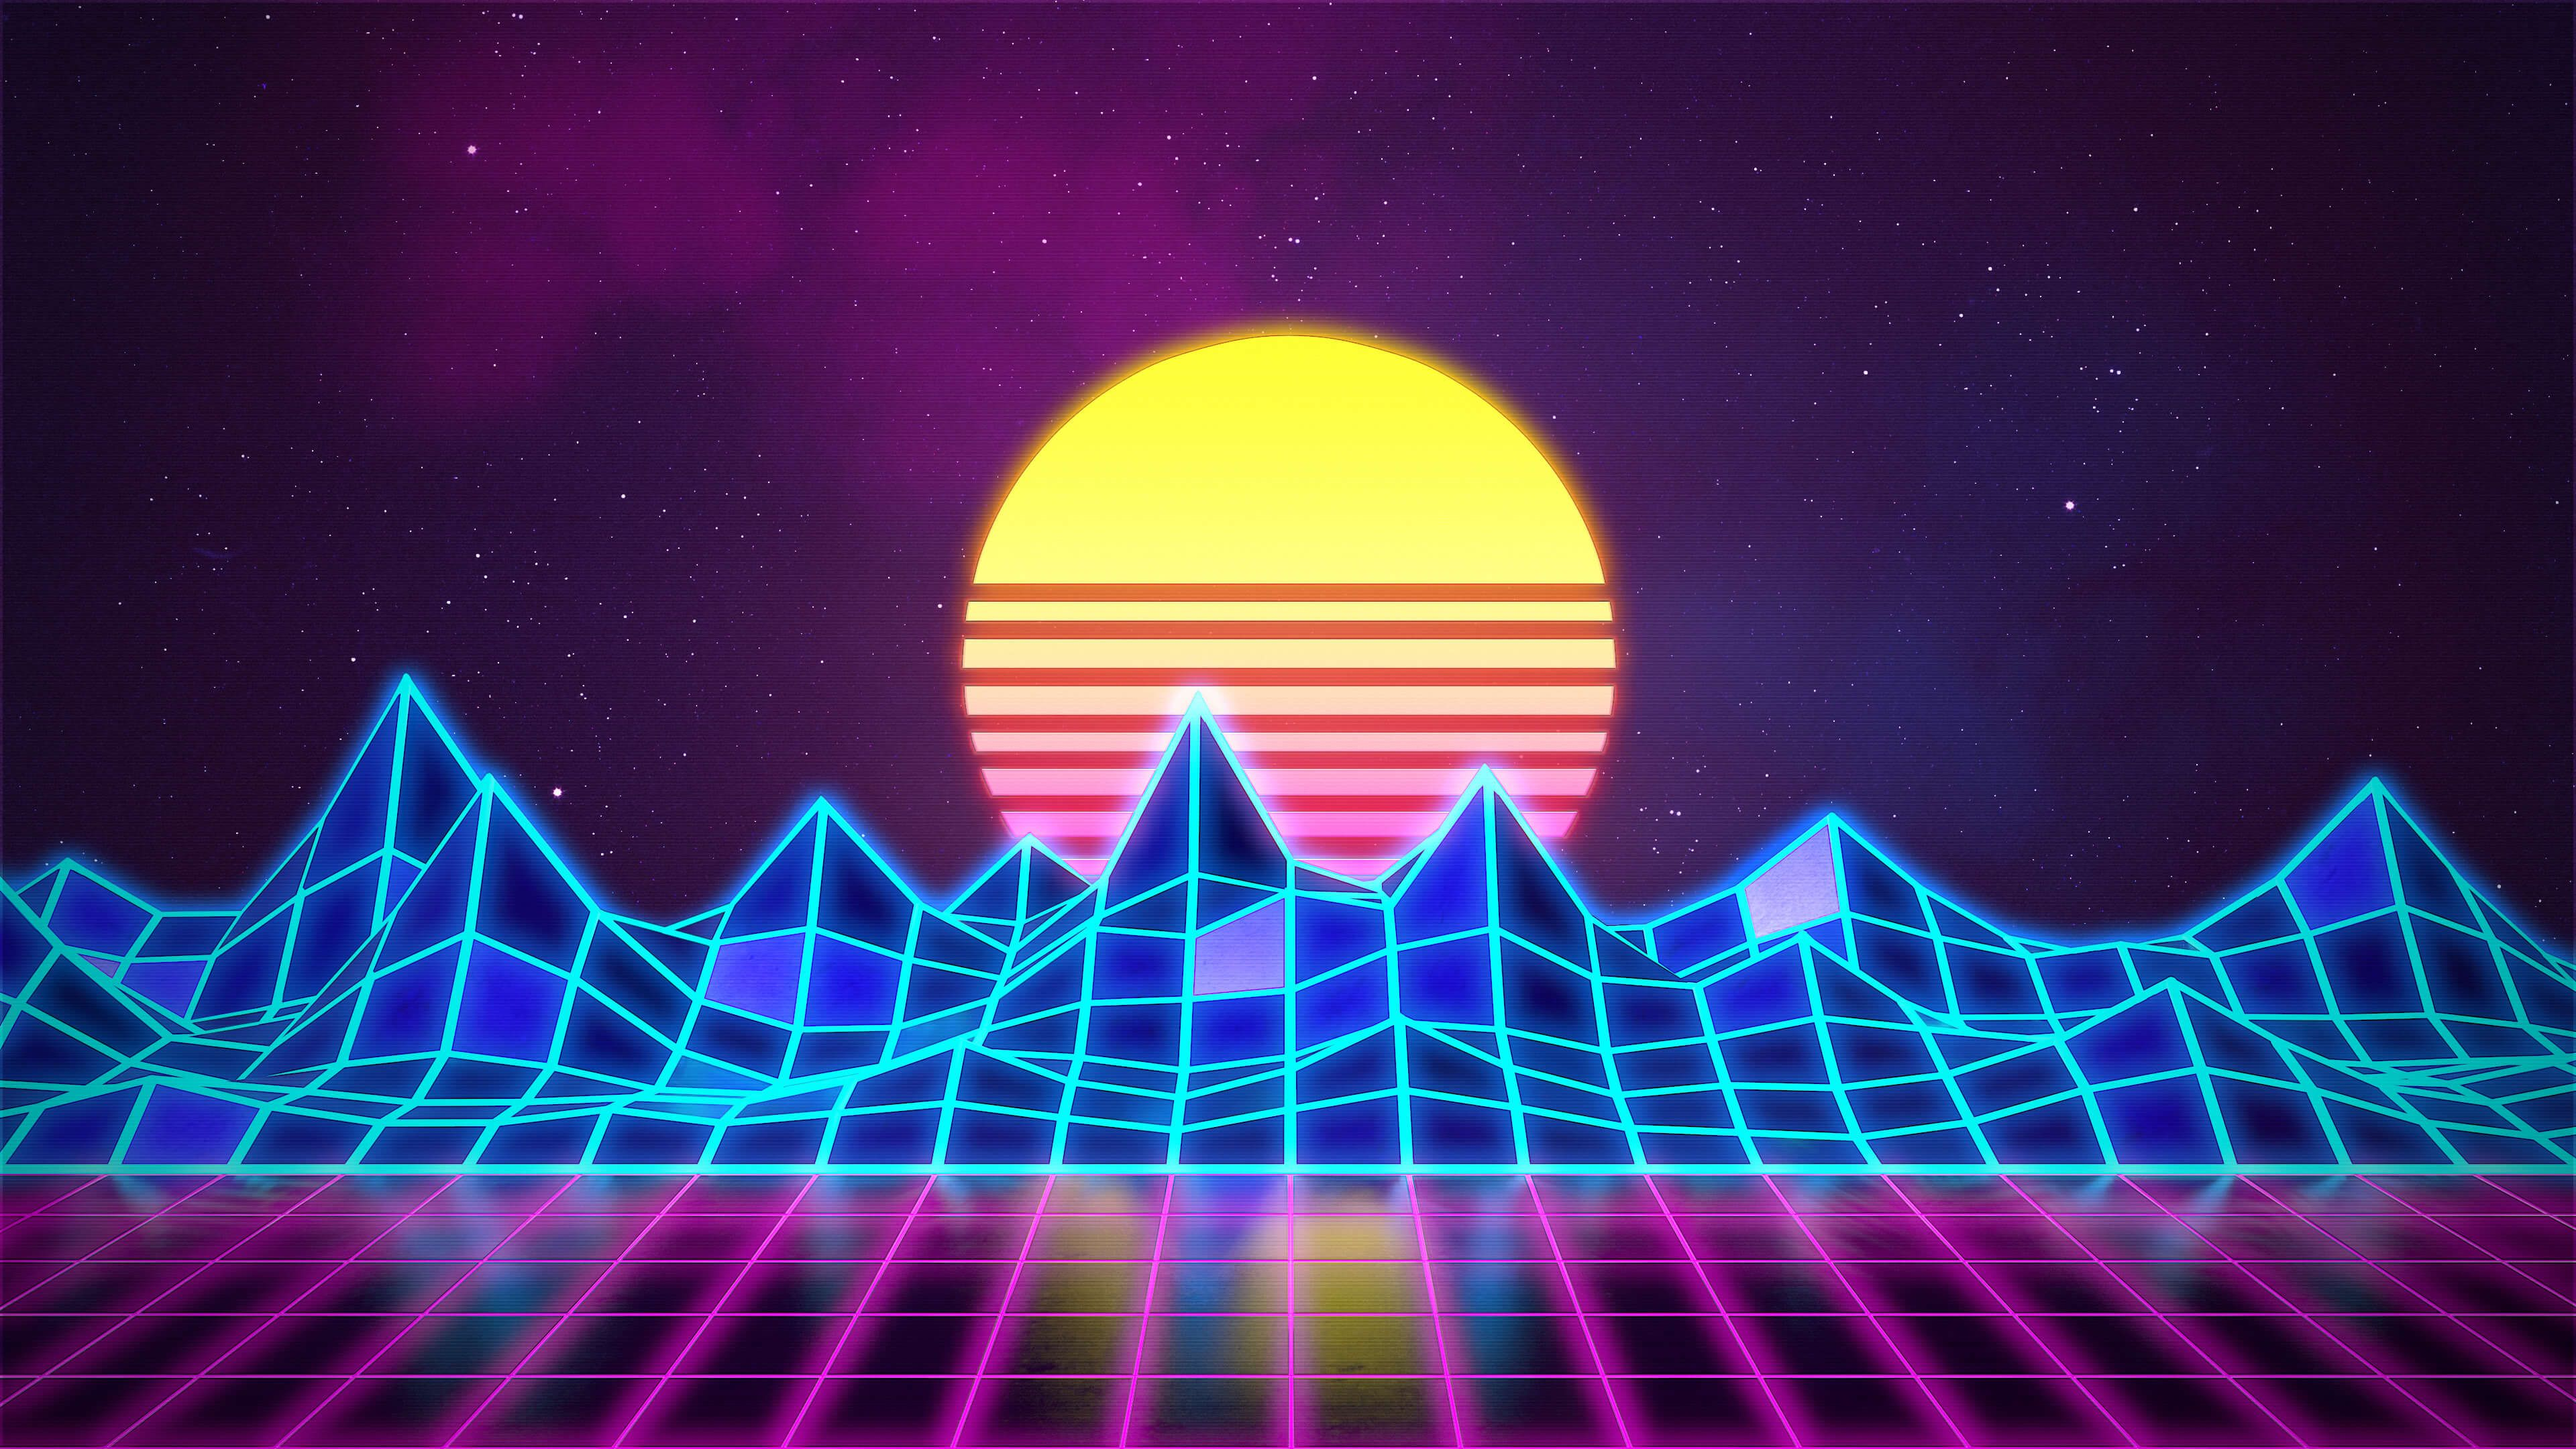 Synthwave Neon 80s Background Marmoset Toolbag